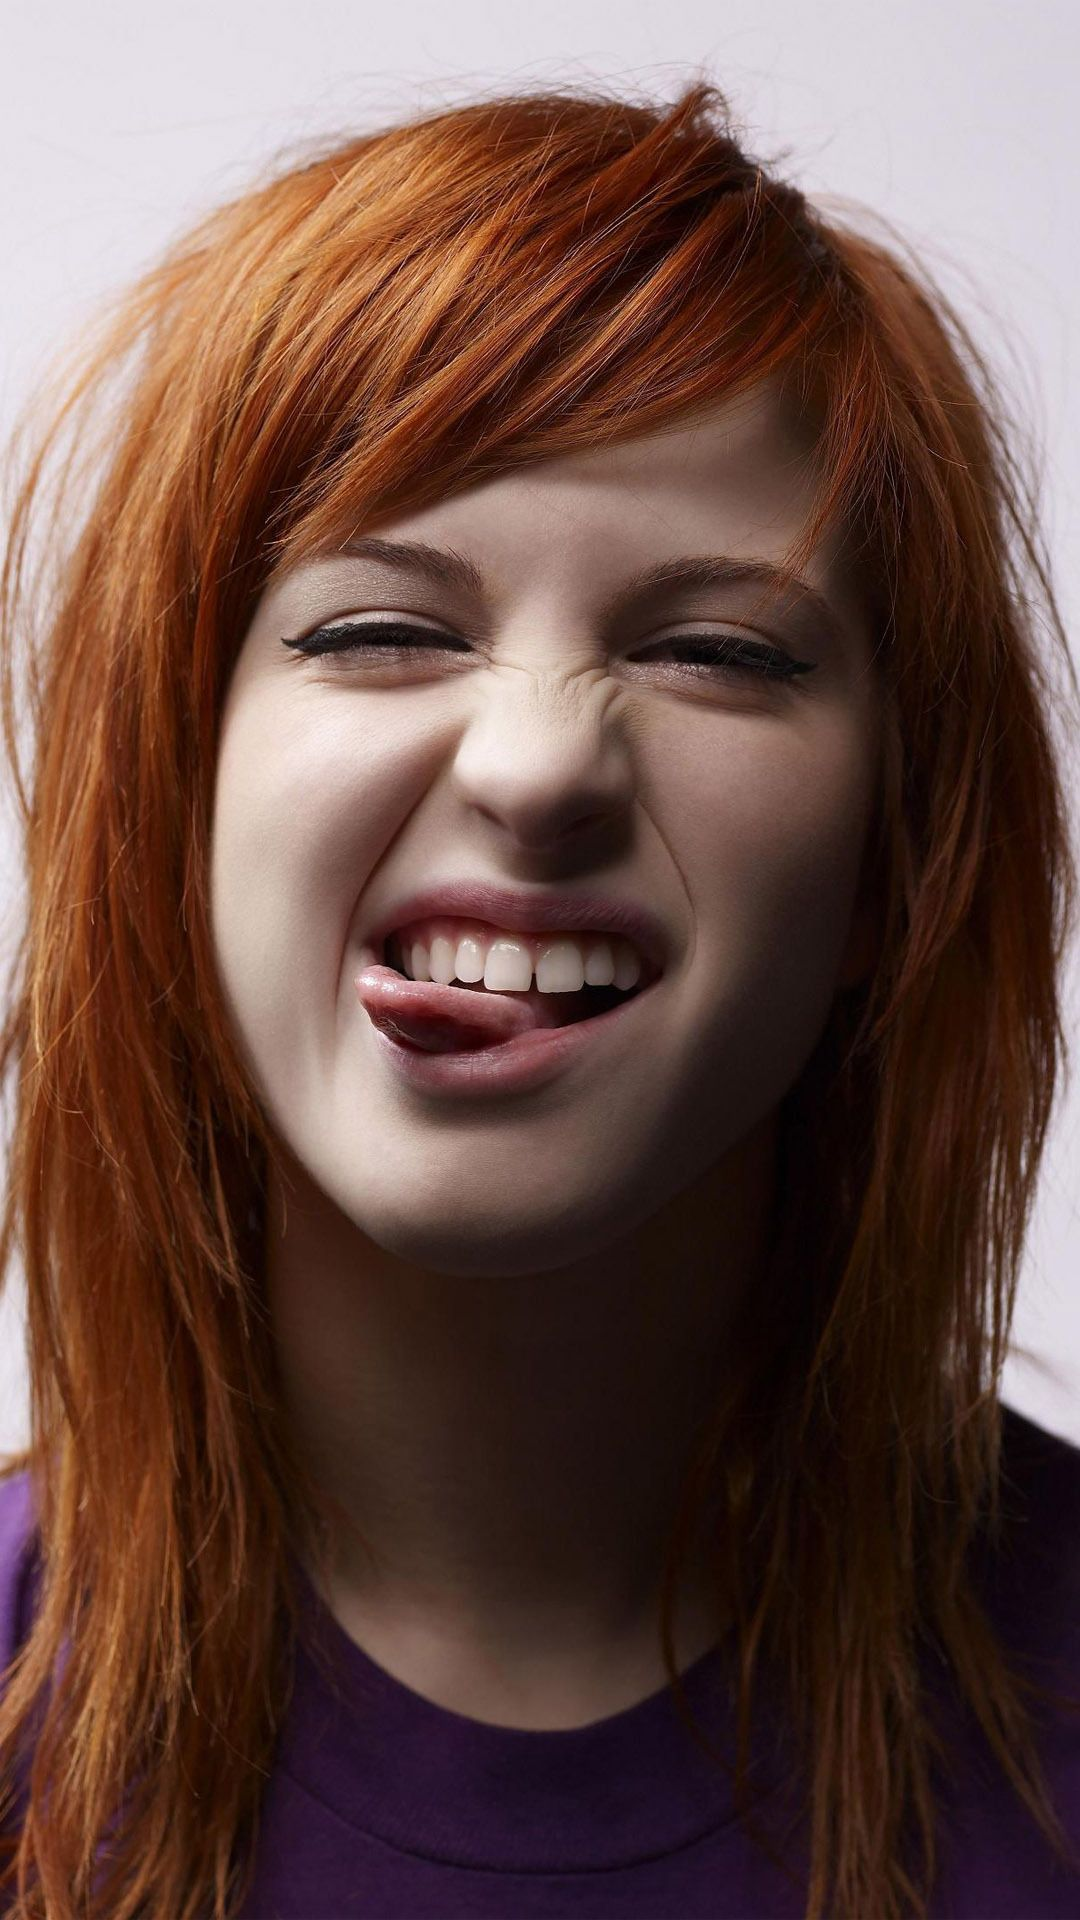 Related Pictures Wallpapers Hayley Williams Y Paramore Cromosomas